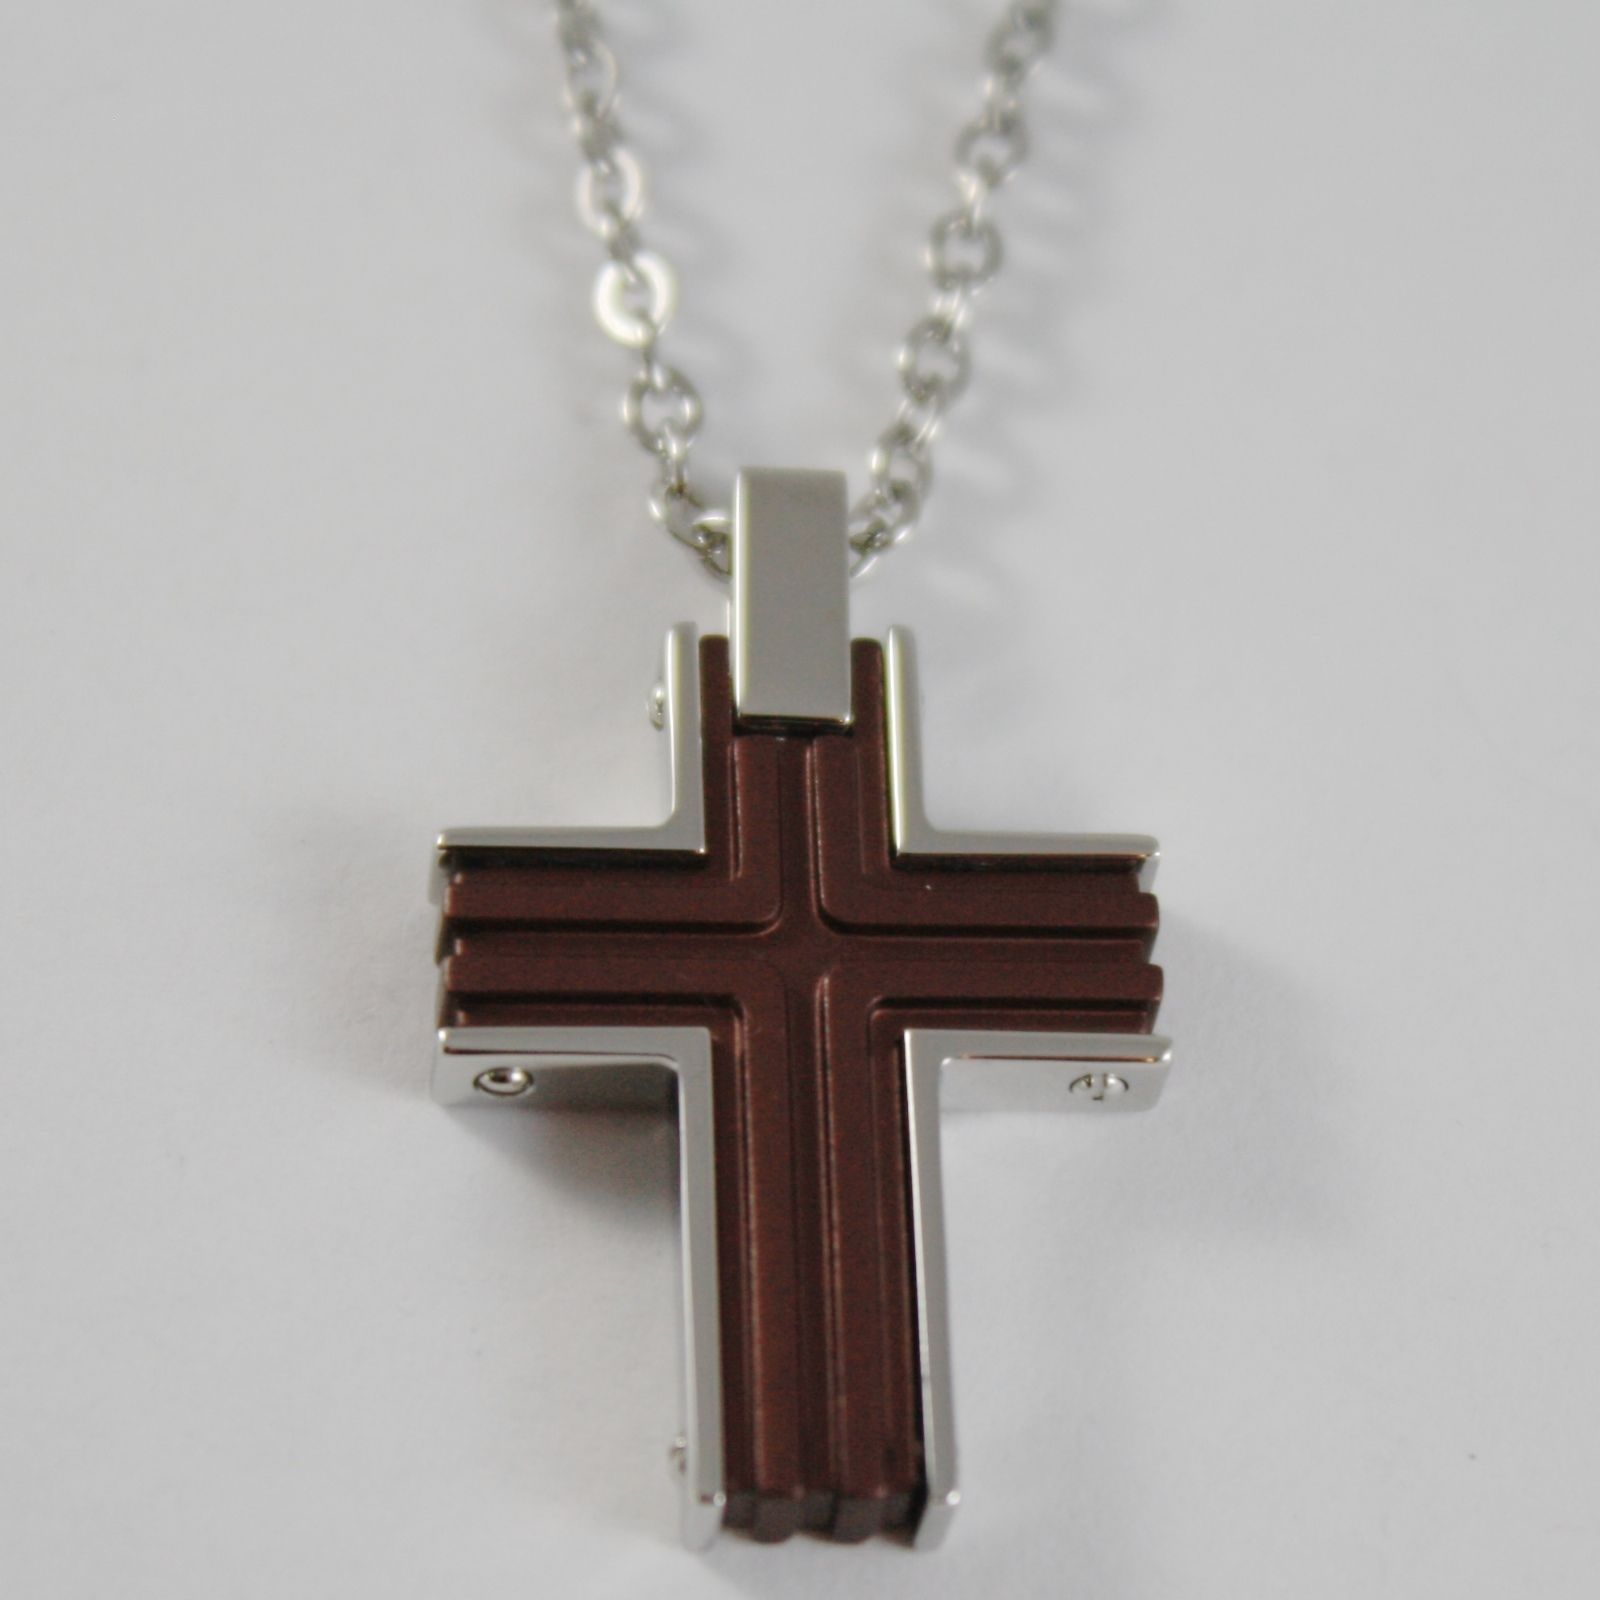 STAINLESS STEEL CROSS PENDANT, BROWN WITH ROLO CHAIN, NECKLACE BY ZANCAN